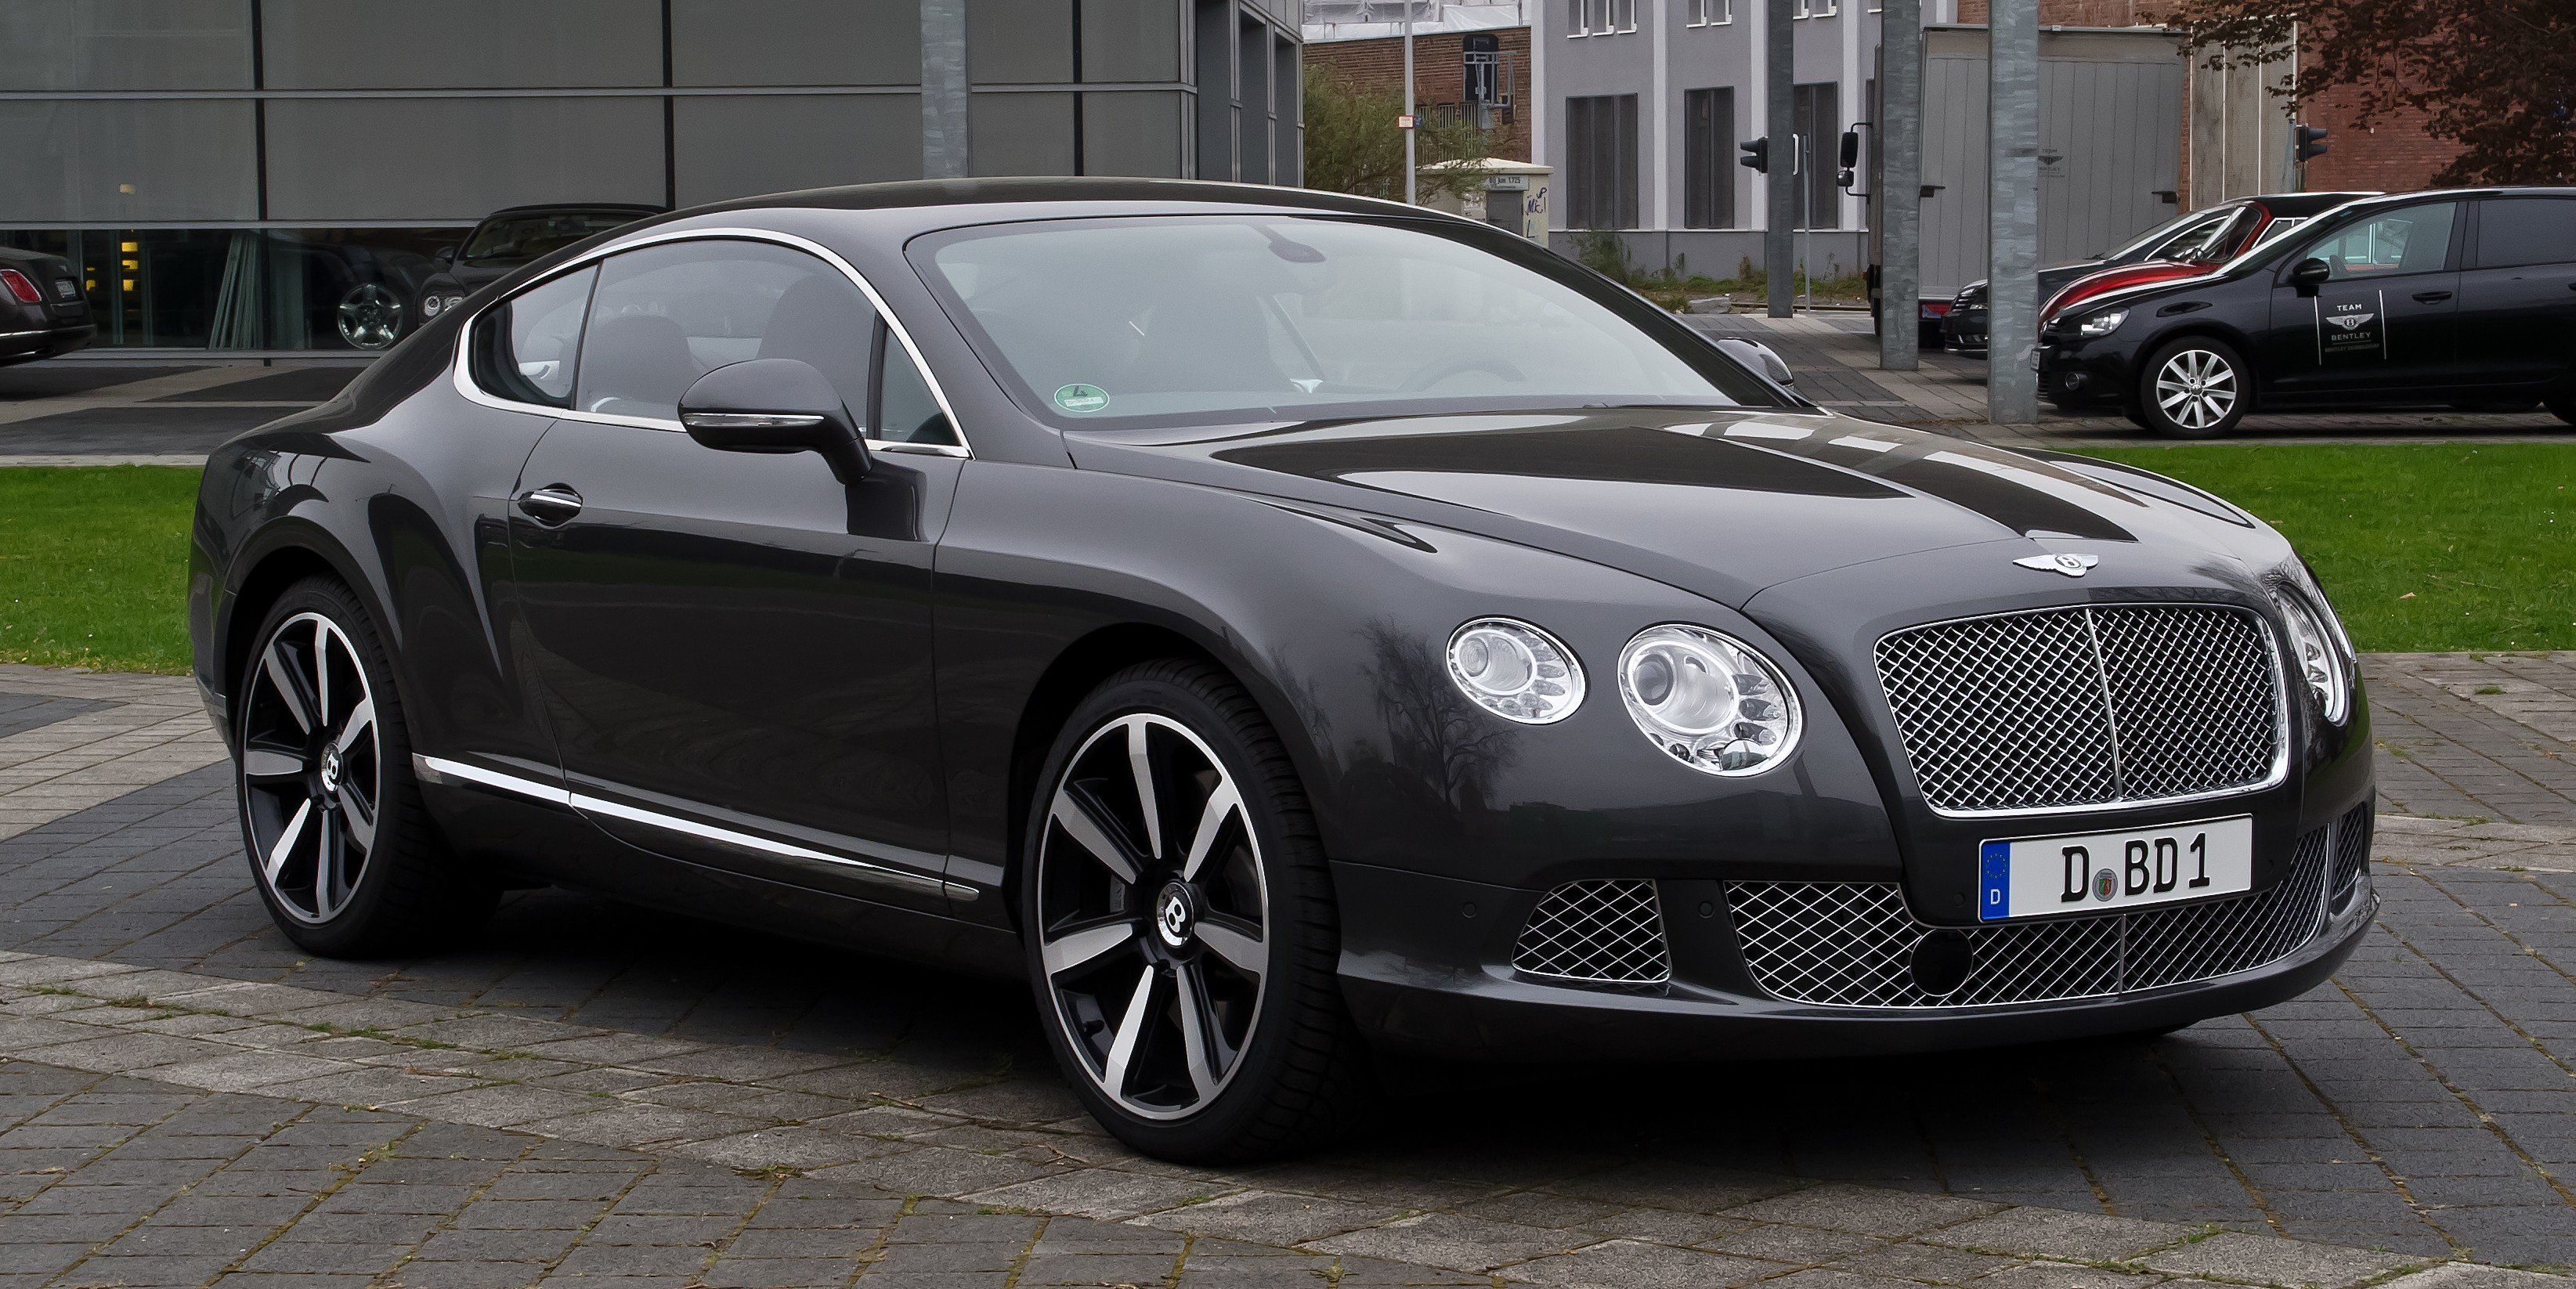 New The Top 10 Bentley Car Models Of All Time On This Month